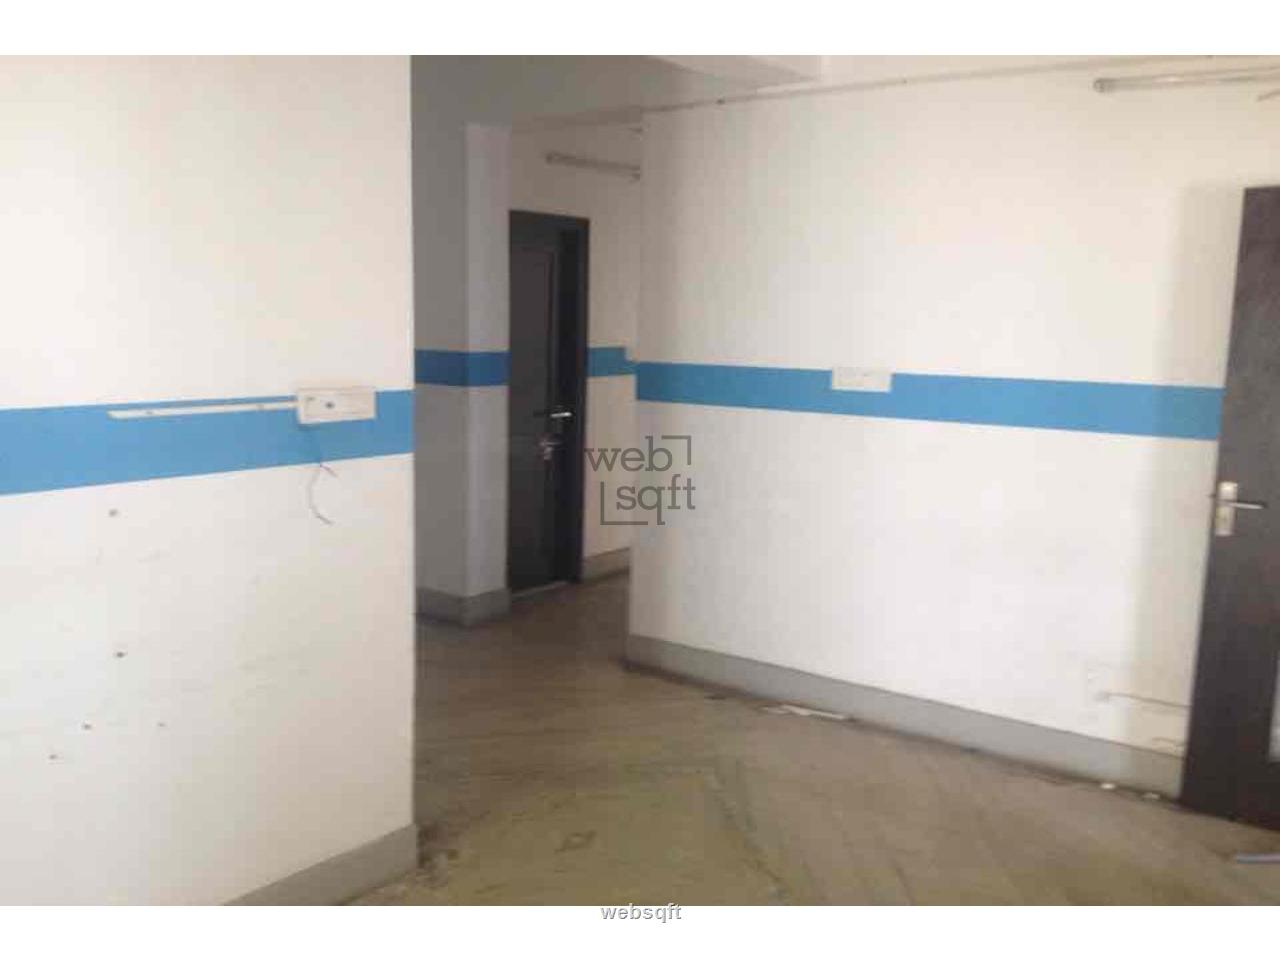 Websqft - Commercial Office Space - Property for Rent - in 2300Sq-ft/Banjara Hills at Rs 103500